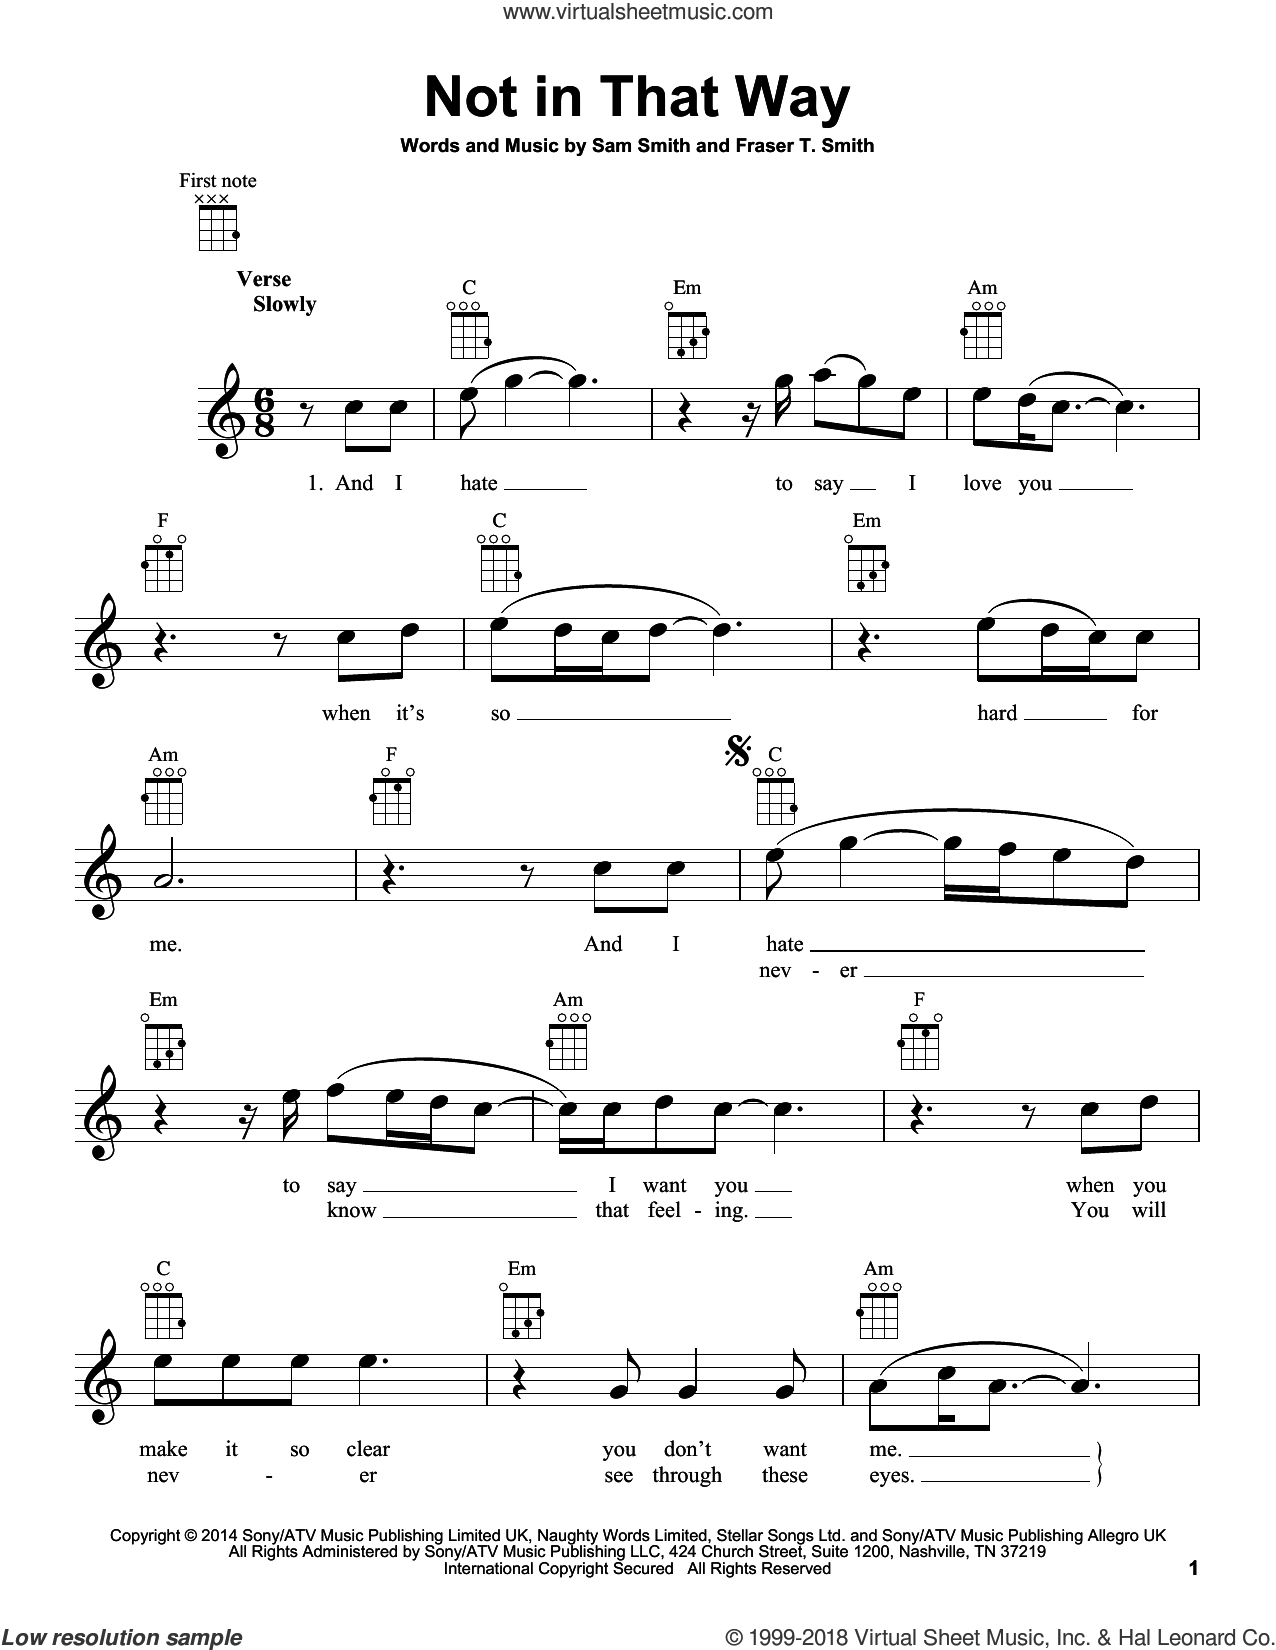 Not In That Way sheet music for ukulele by Sam Smith and Fraser T. Smith, intermediate skill level